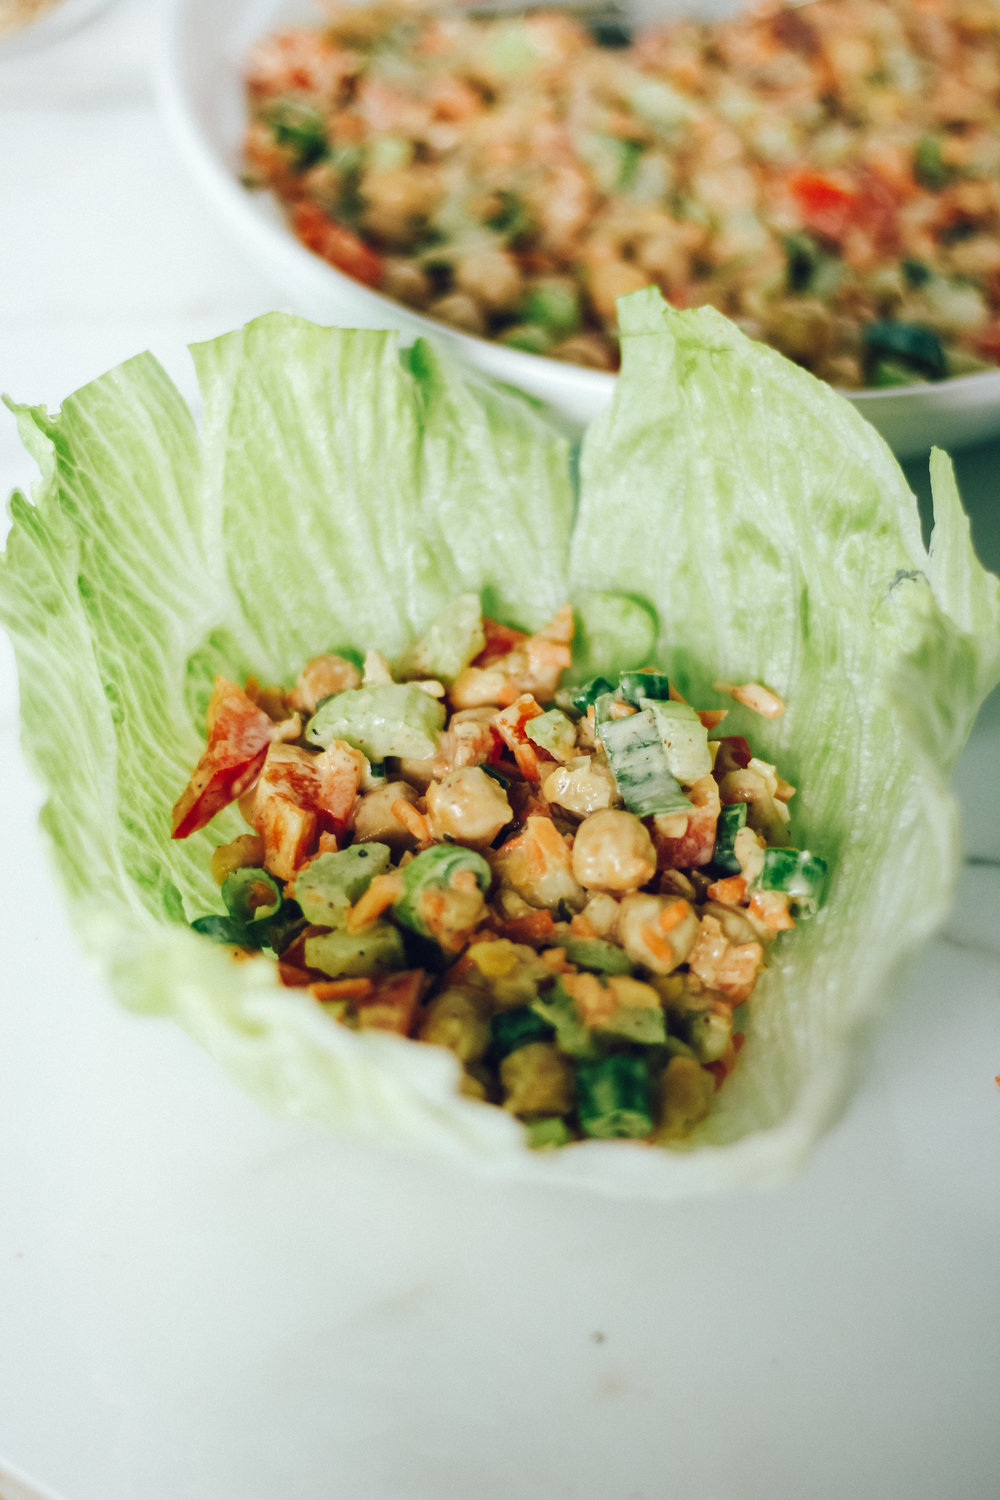 Healthy Chickpea salad meal prep 3 ways - Lettuce wraps [Live Well and Grateful]